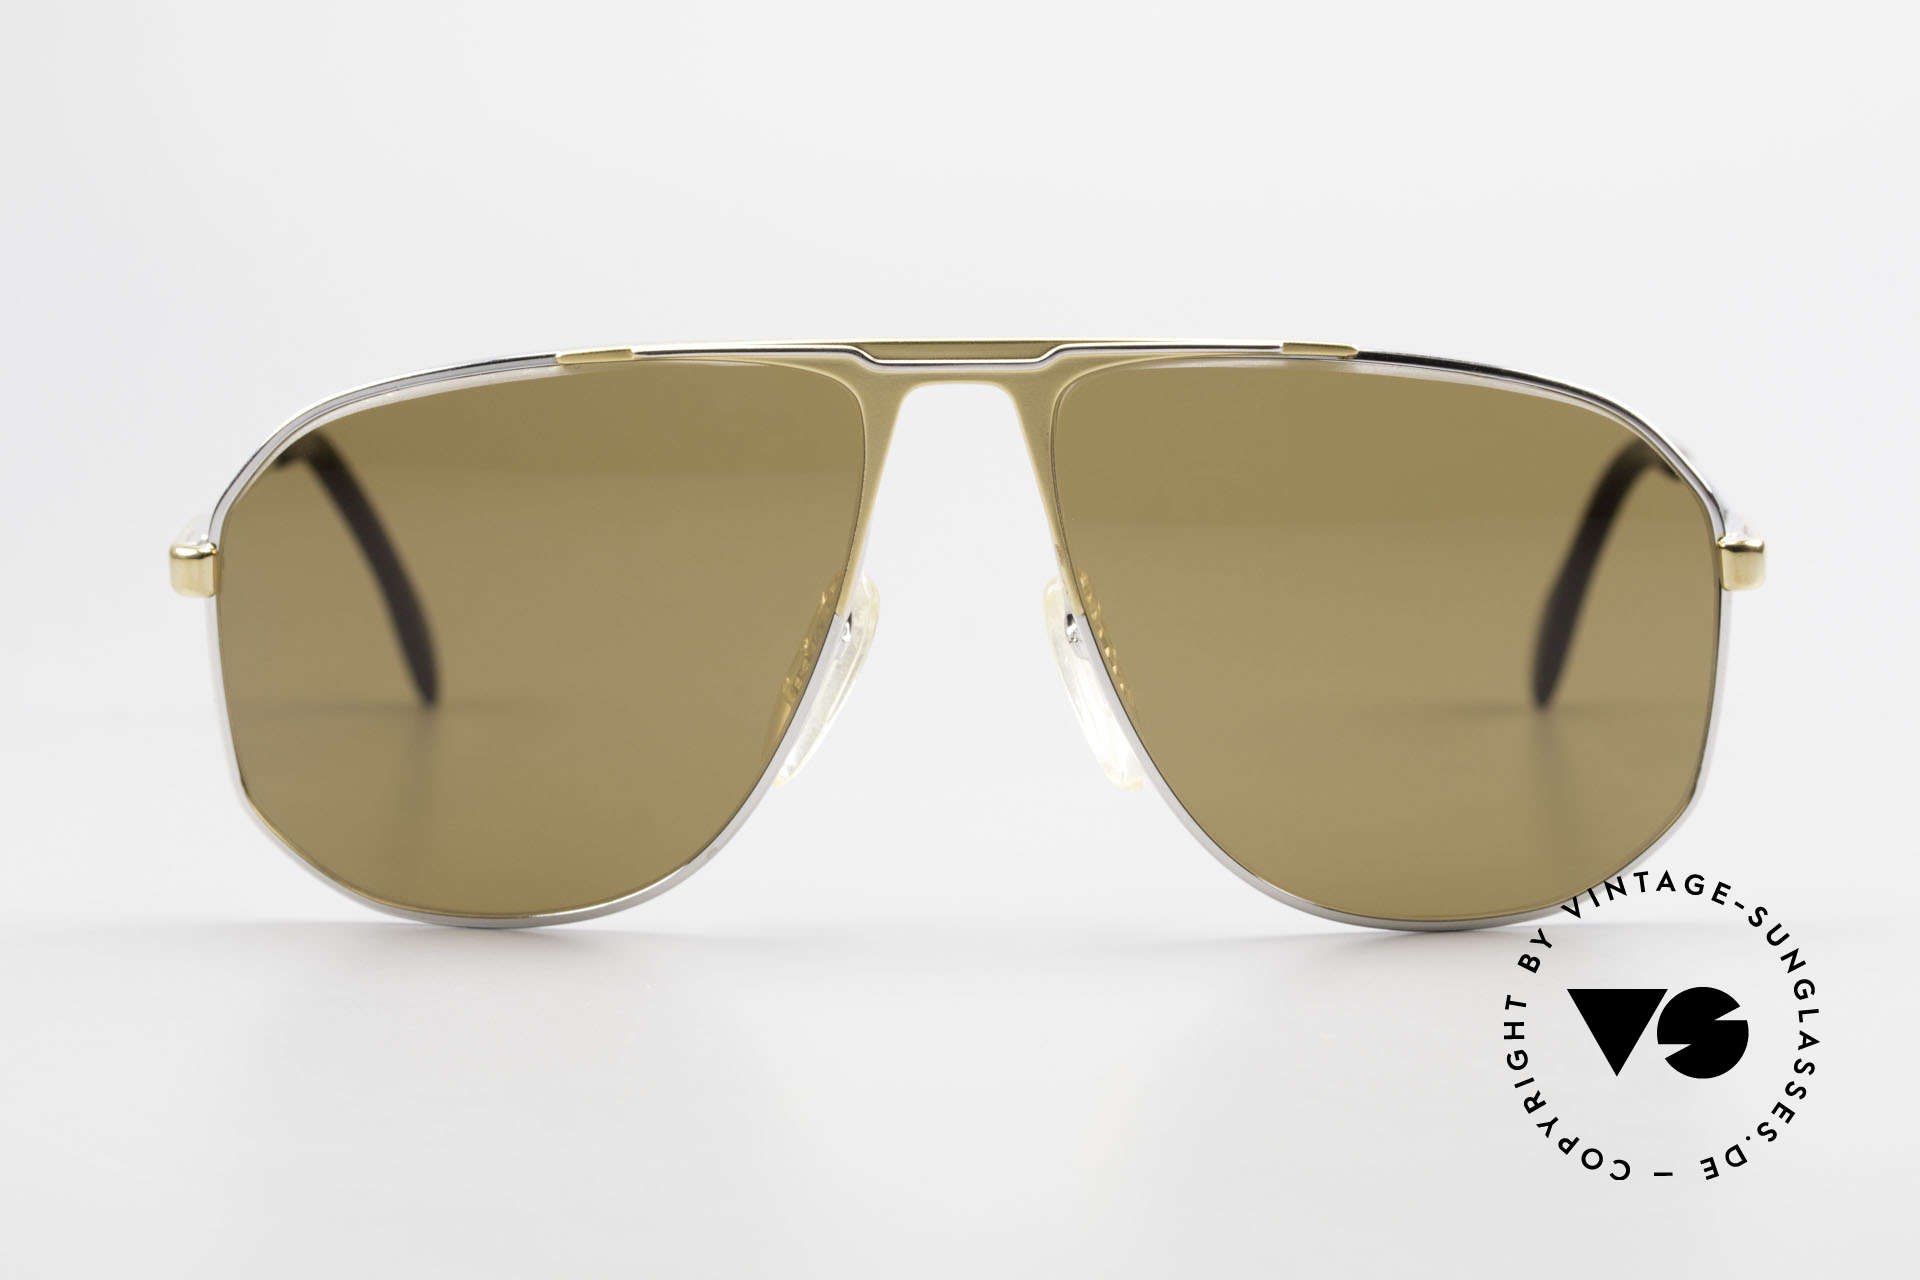 Zeiss 5871 80's Men's Quality Sunglasses, outstanding craftsmanship - made in WEST GERMANY, Made for Men